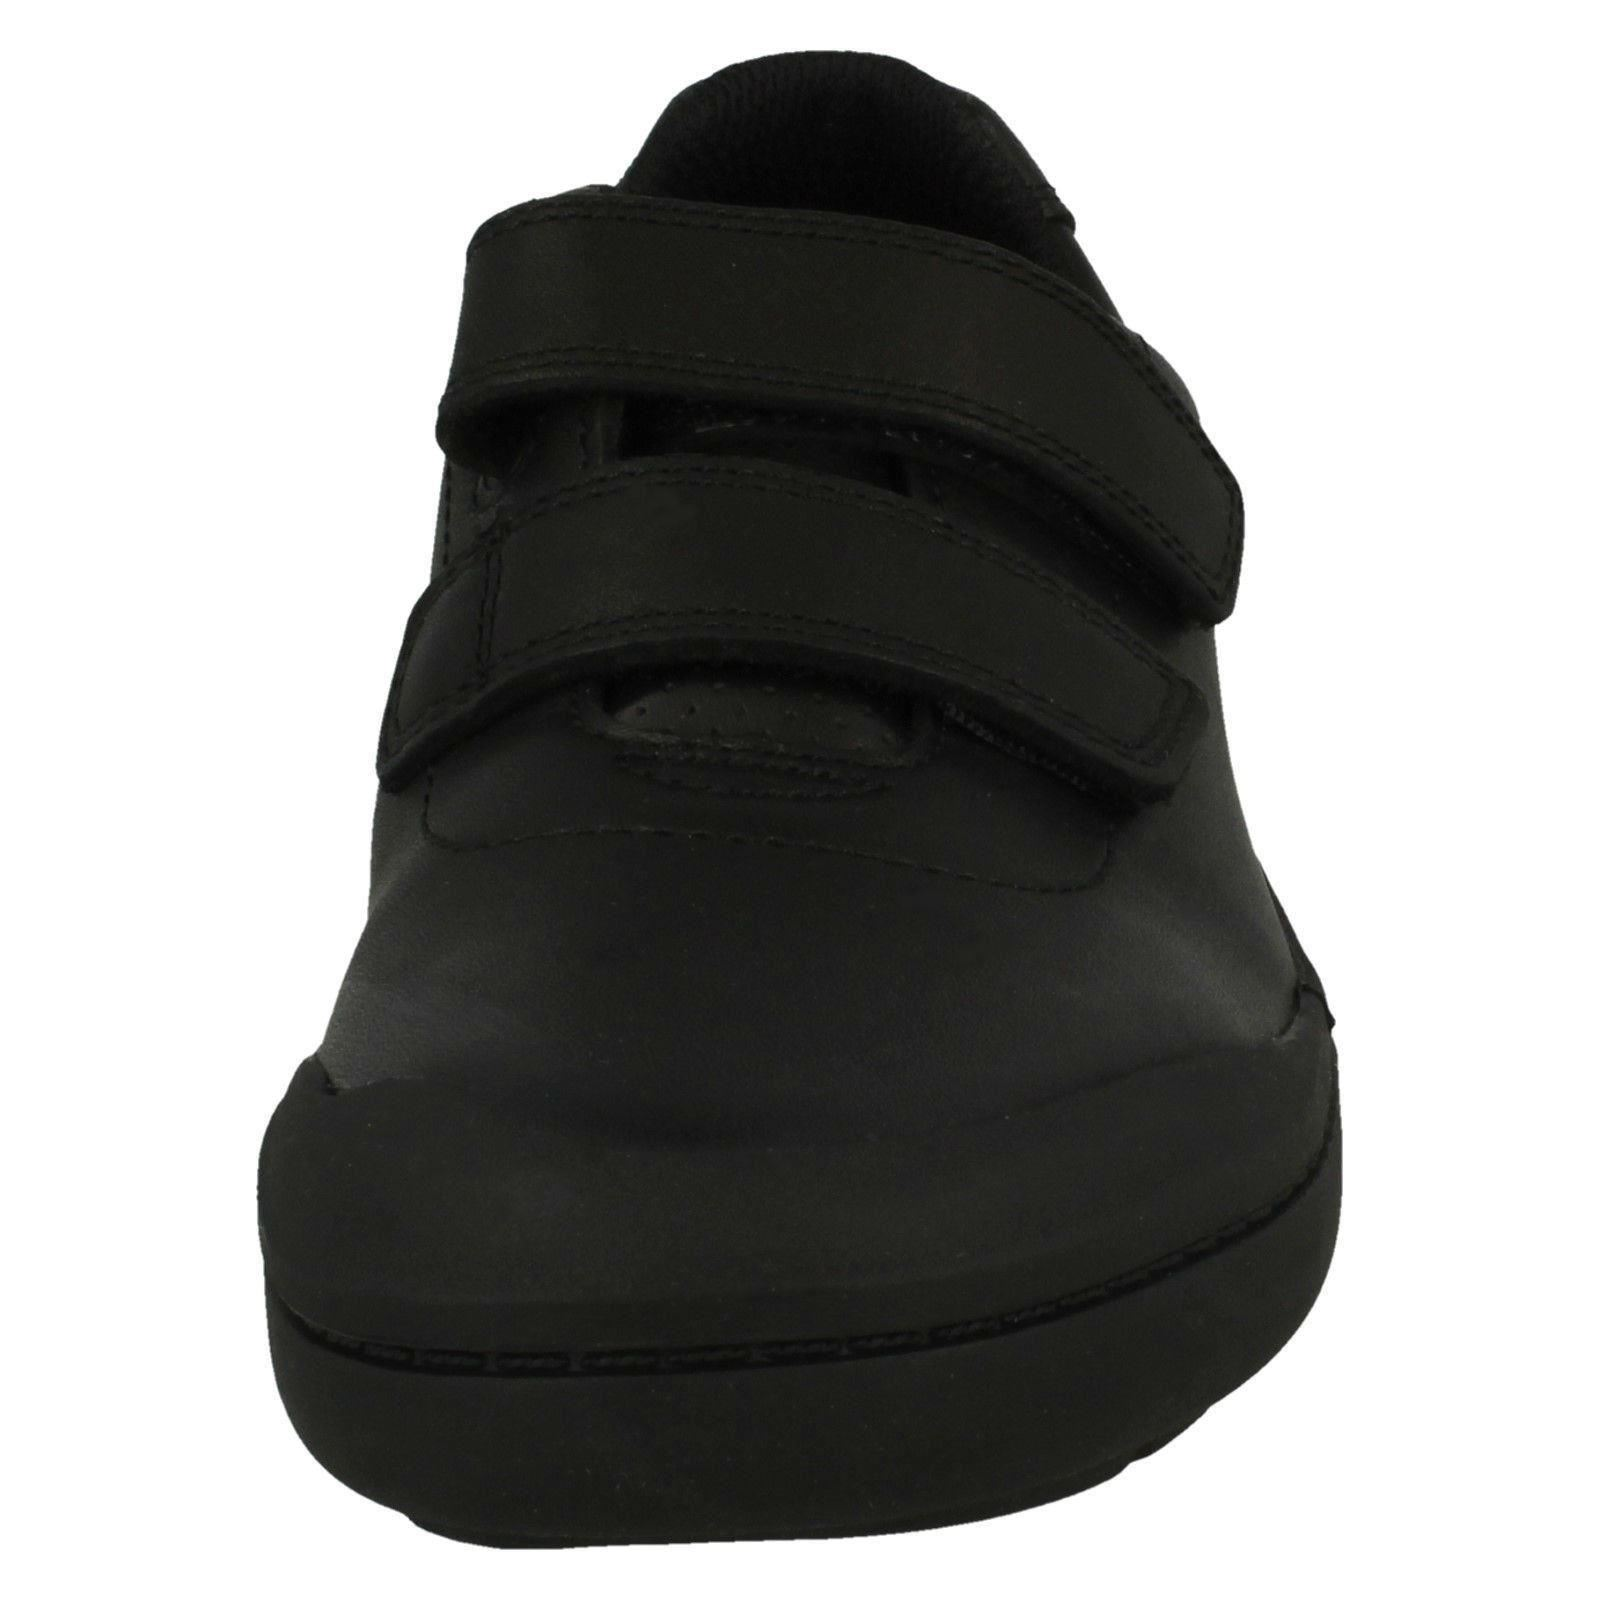 338f05957 Boys-Clarks-Smart-School-Shoes-Rock-Play thumbnail 5